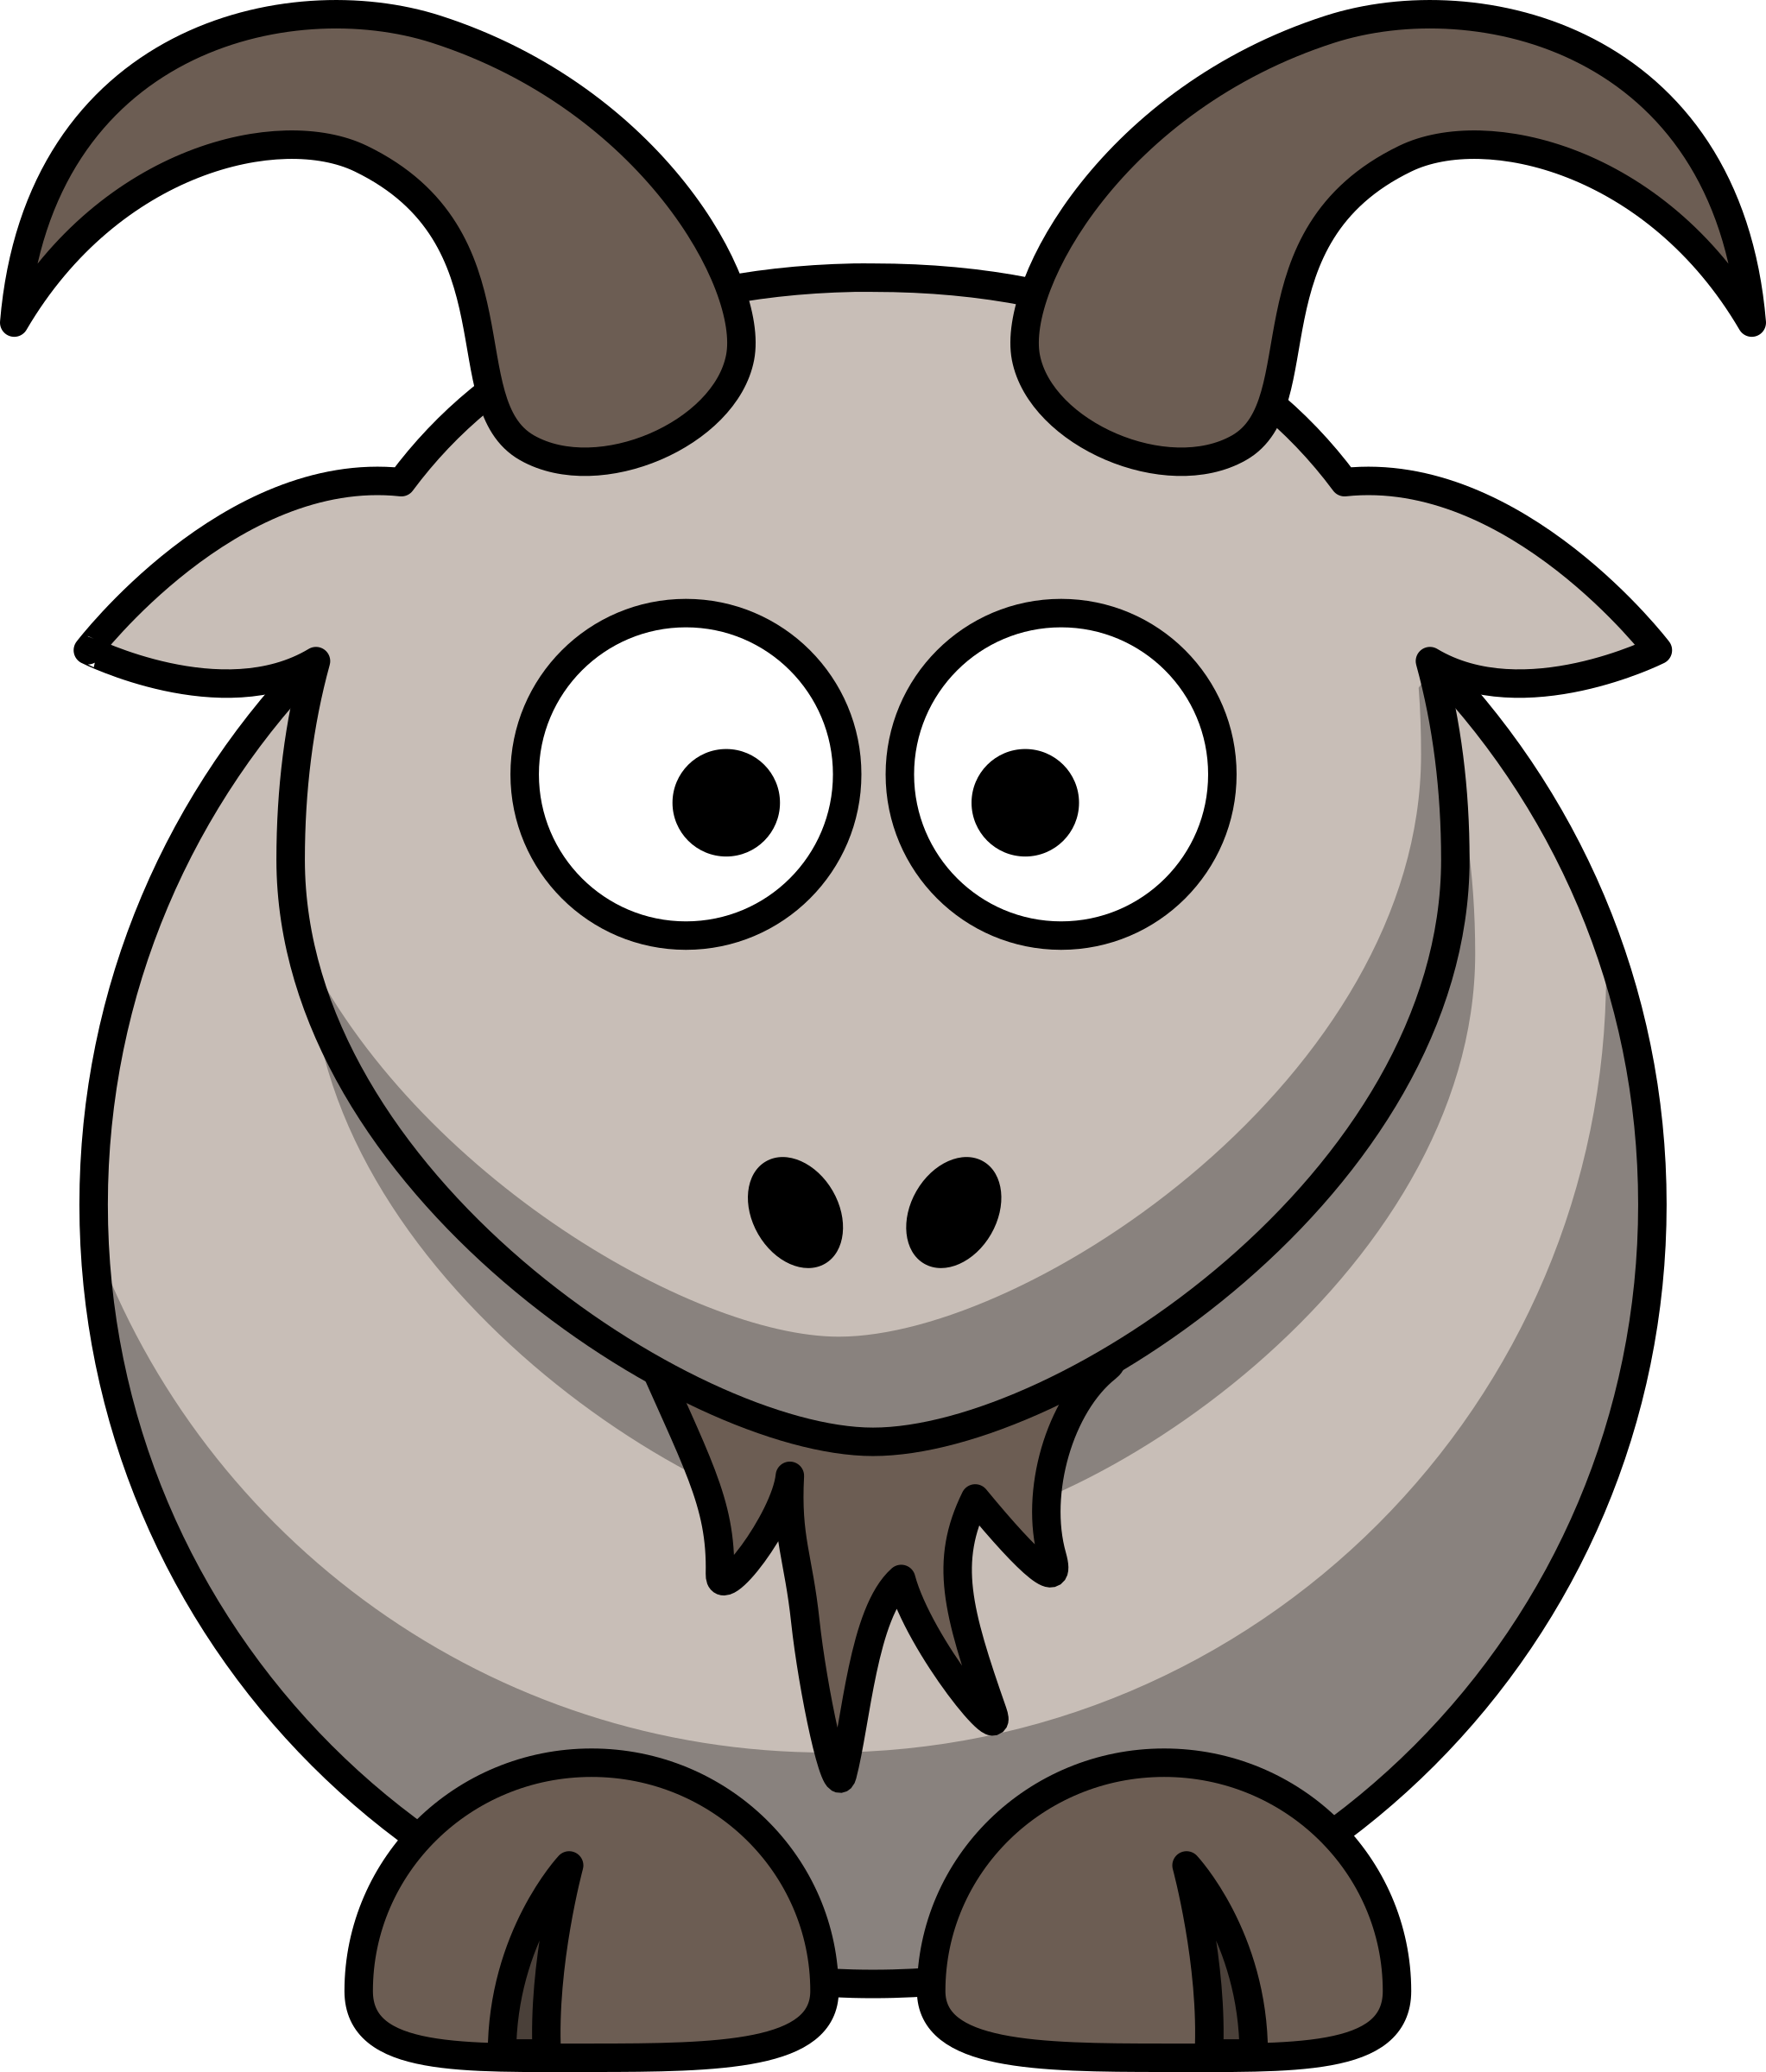 Flexing goat clipart clip black and white download Goat cartoon clipart images gallery for free download | MyReal clip ... clip black and white download